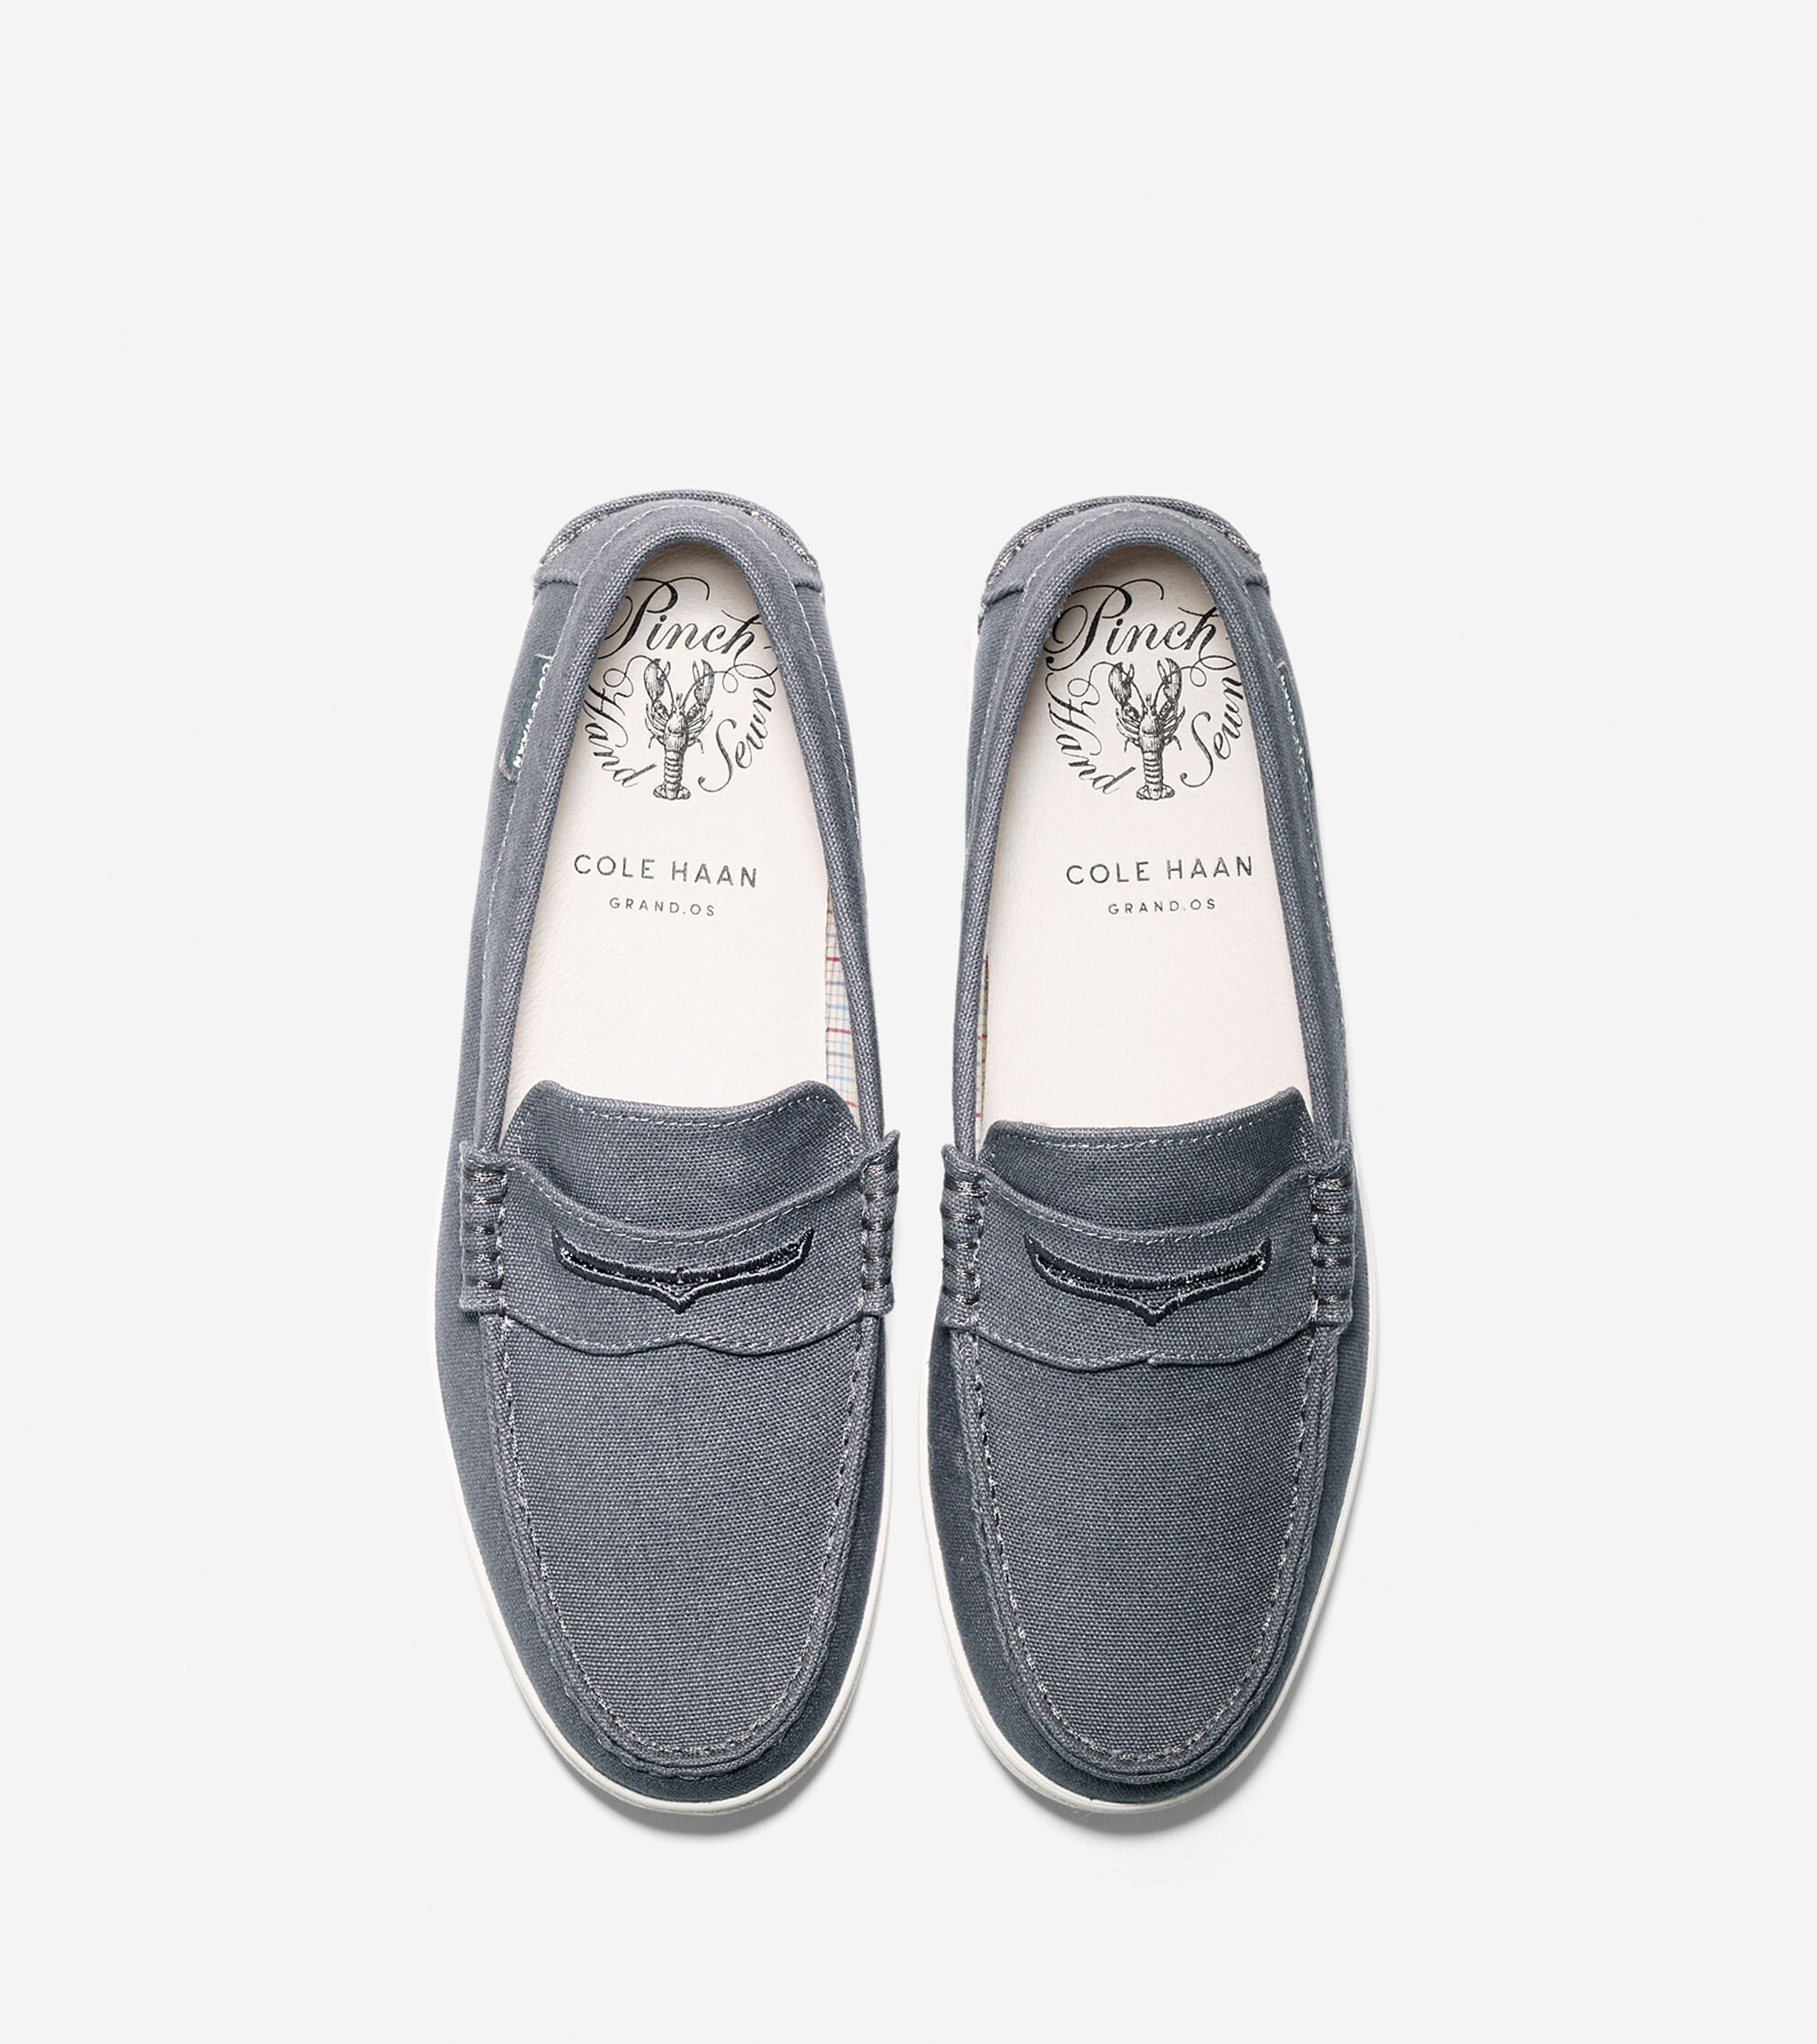 pinch men ★ cole haan pinch penny loafer (men) @ today price mens loafers amp slip ons, shop sale price today and get up to 30-70% off [cole haan pinch penny loafer (men)] shop online for shoes, clothing.